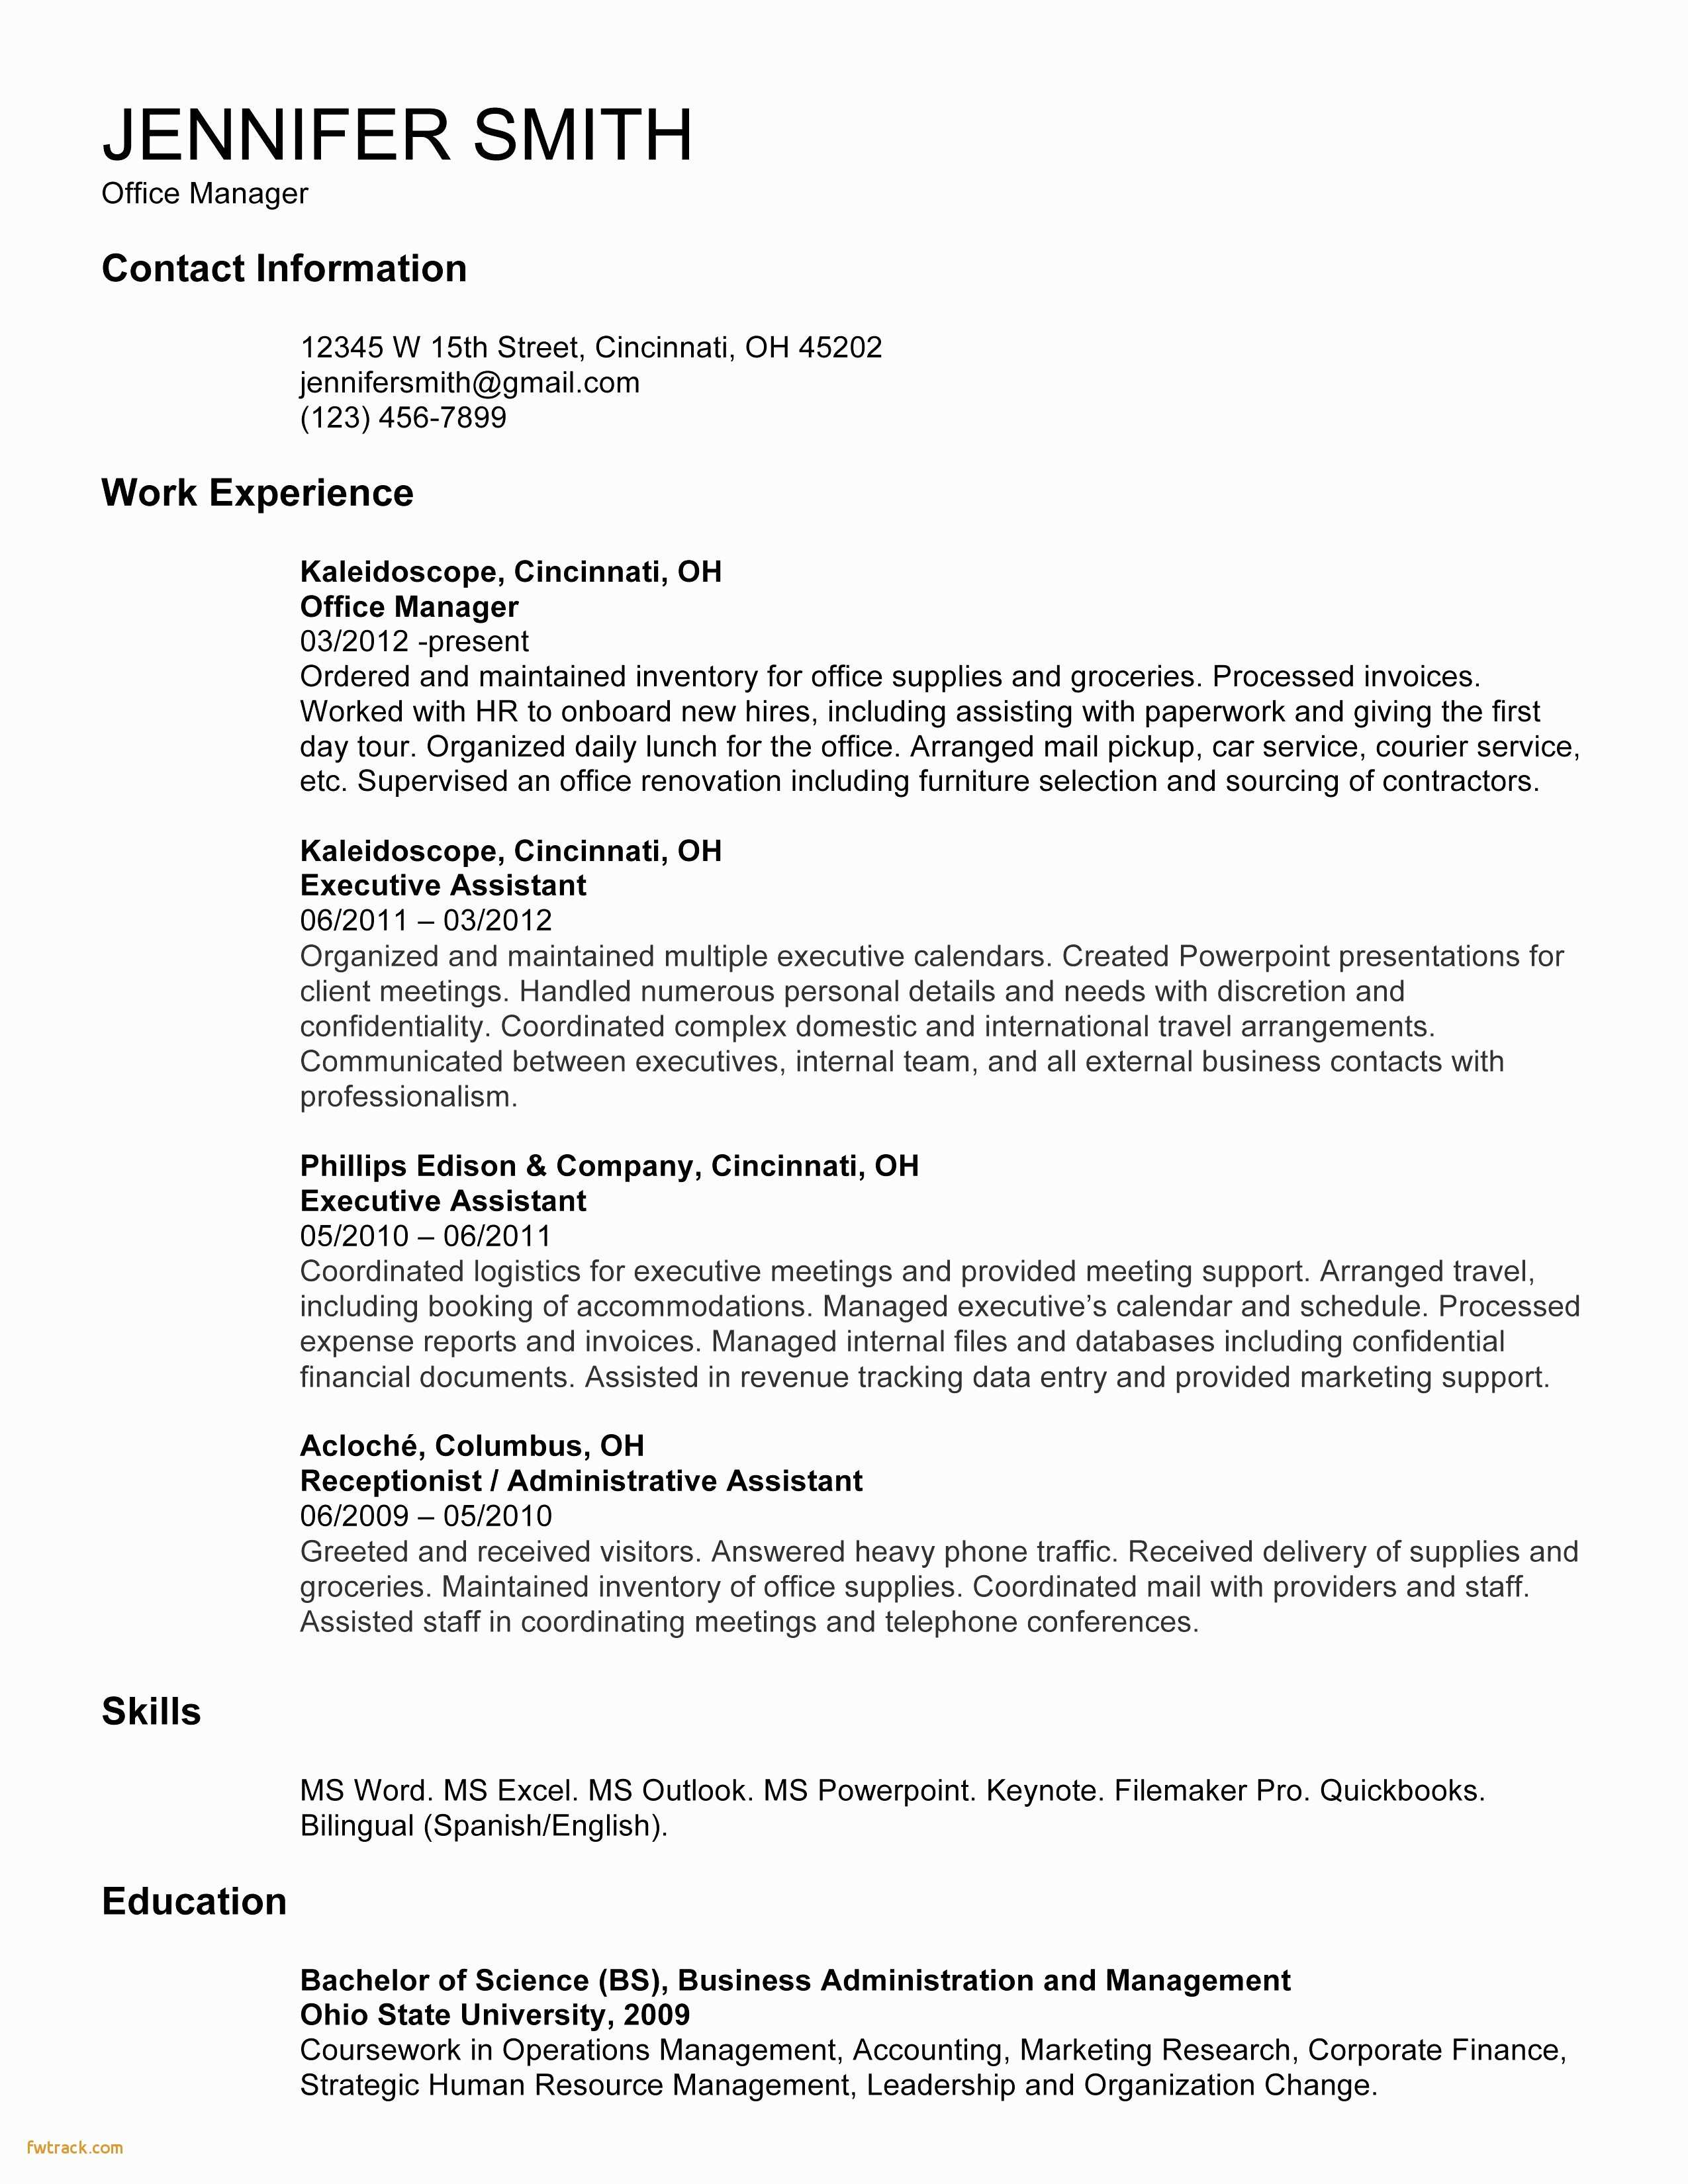 Contractor Resume Template - Contractor Resume Template Fwtrack Fwtrack